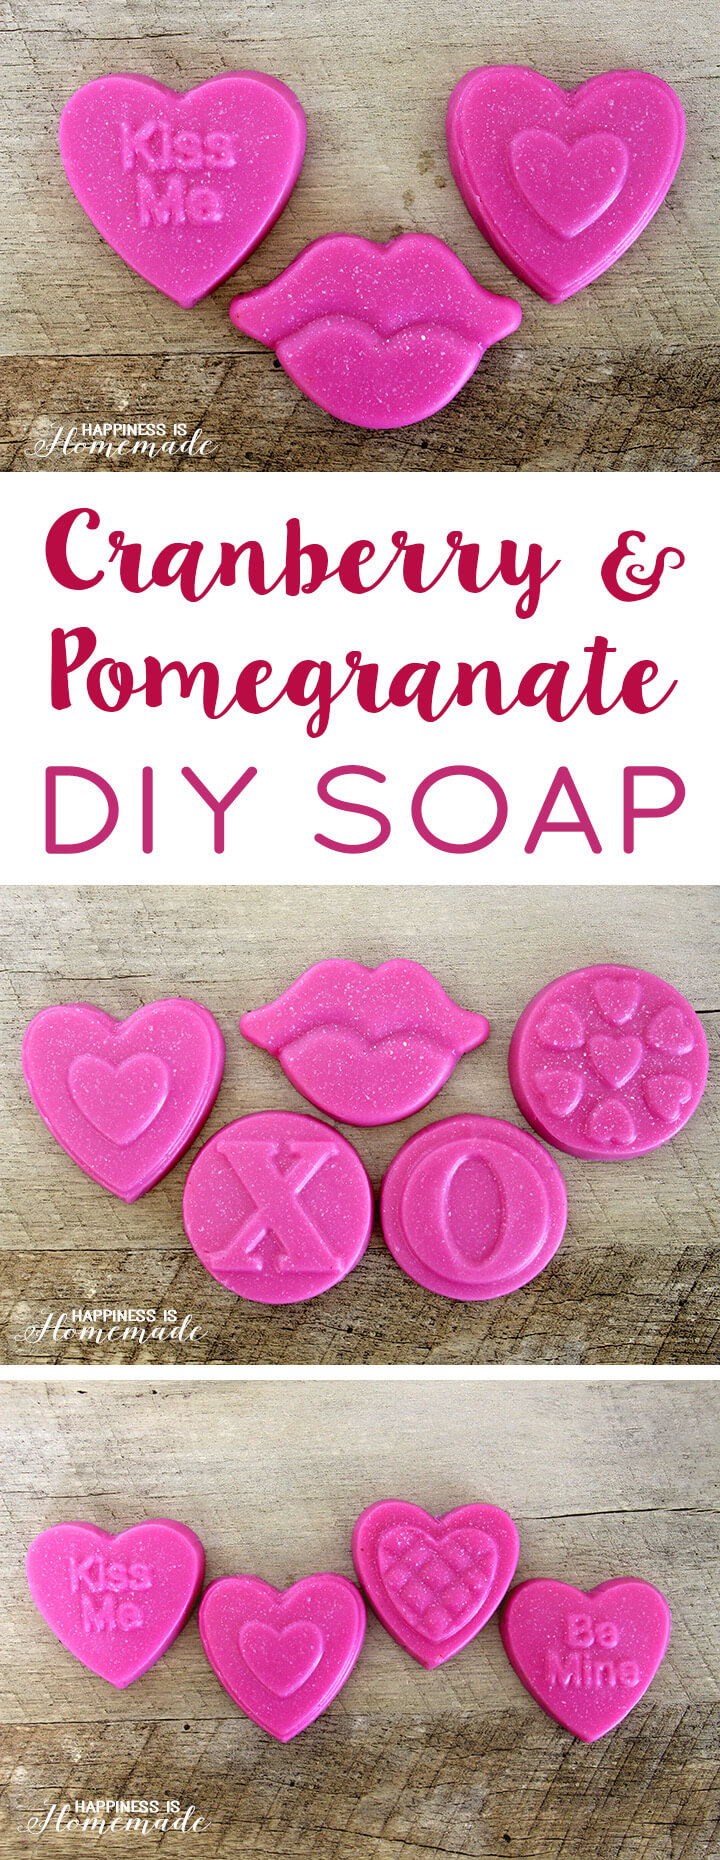 Cranberry and Pomegranate DIY Soaps